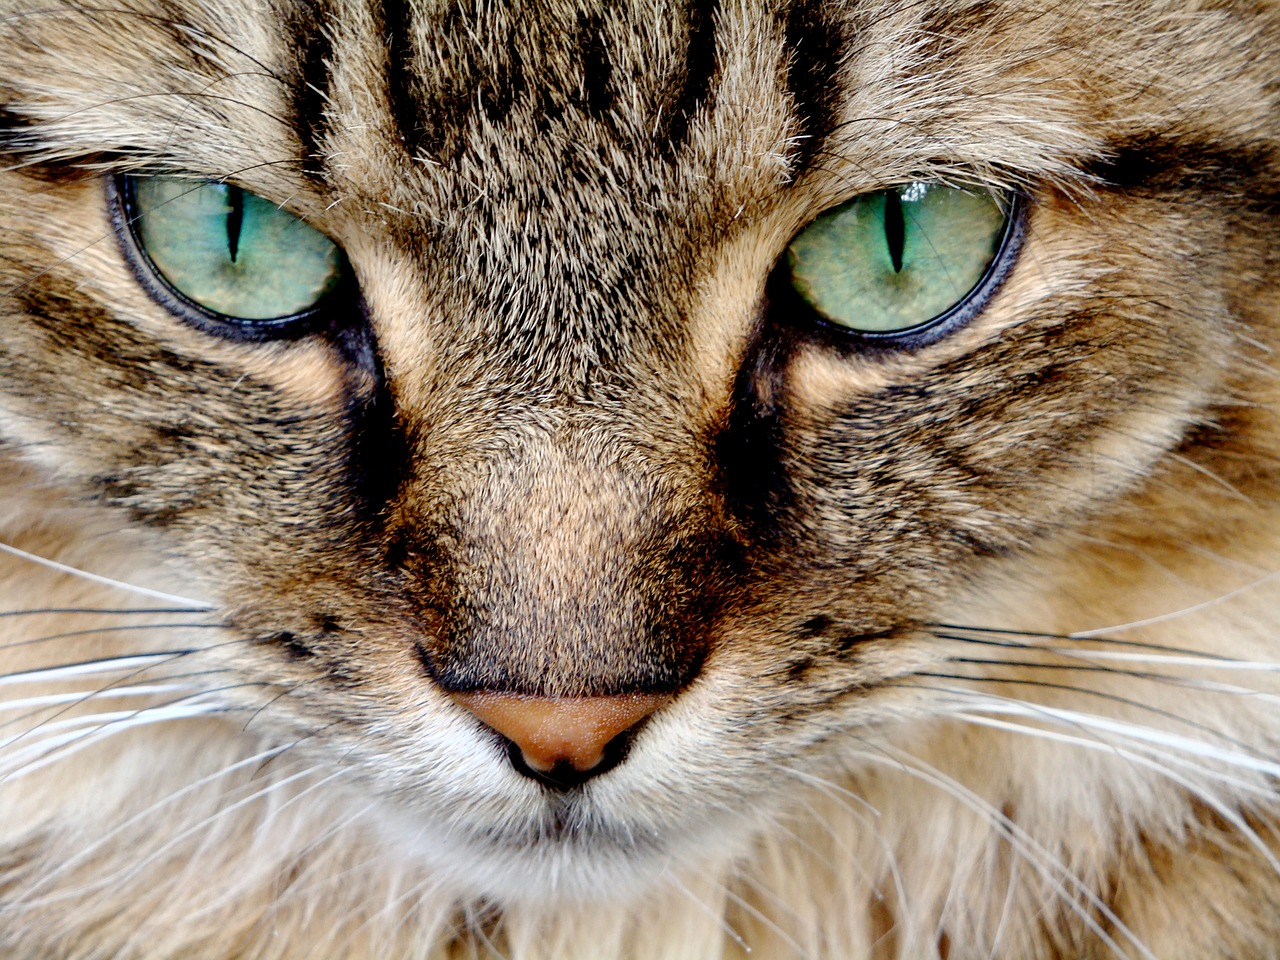 Cats Eyes Close Up